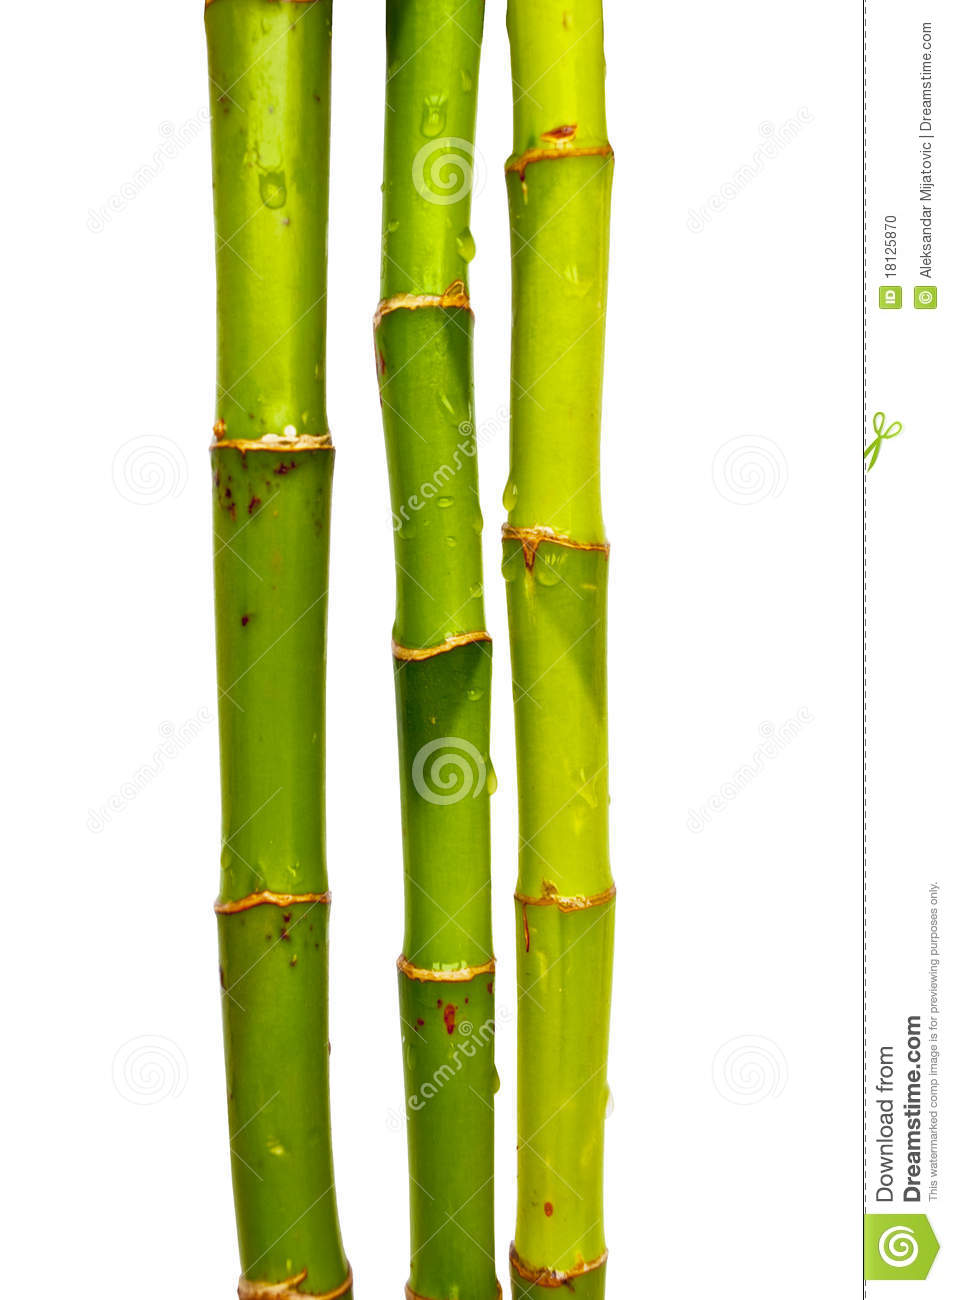 Bamboo sticks stock photo image